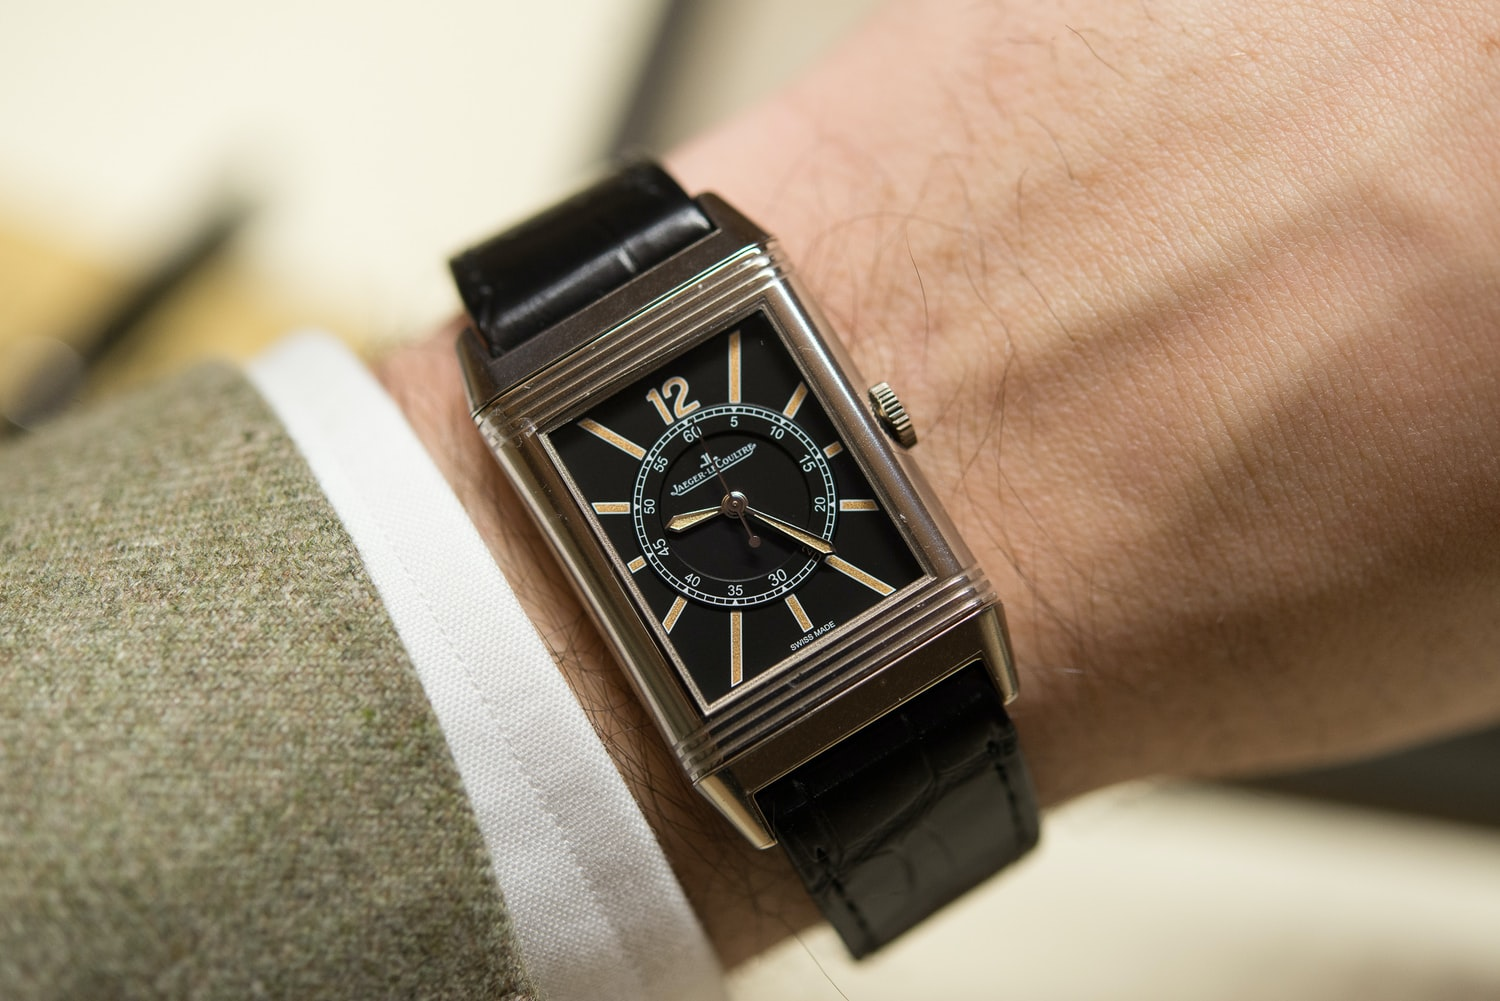 Jaeger LeCoultre Grande Reverso 1931 Editors' Picks: The HODINKEE Valentine's Day 2016 Watch Gift Guide, Because Watches Won't Give You Cavities Editors\' Picks: The HODINKEE Valentine\'s Day 2016 Watch Gift Guide, Because Watches Won\'t Give You Cavities 22